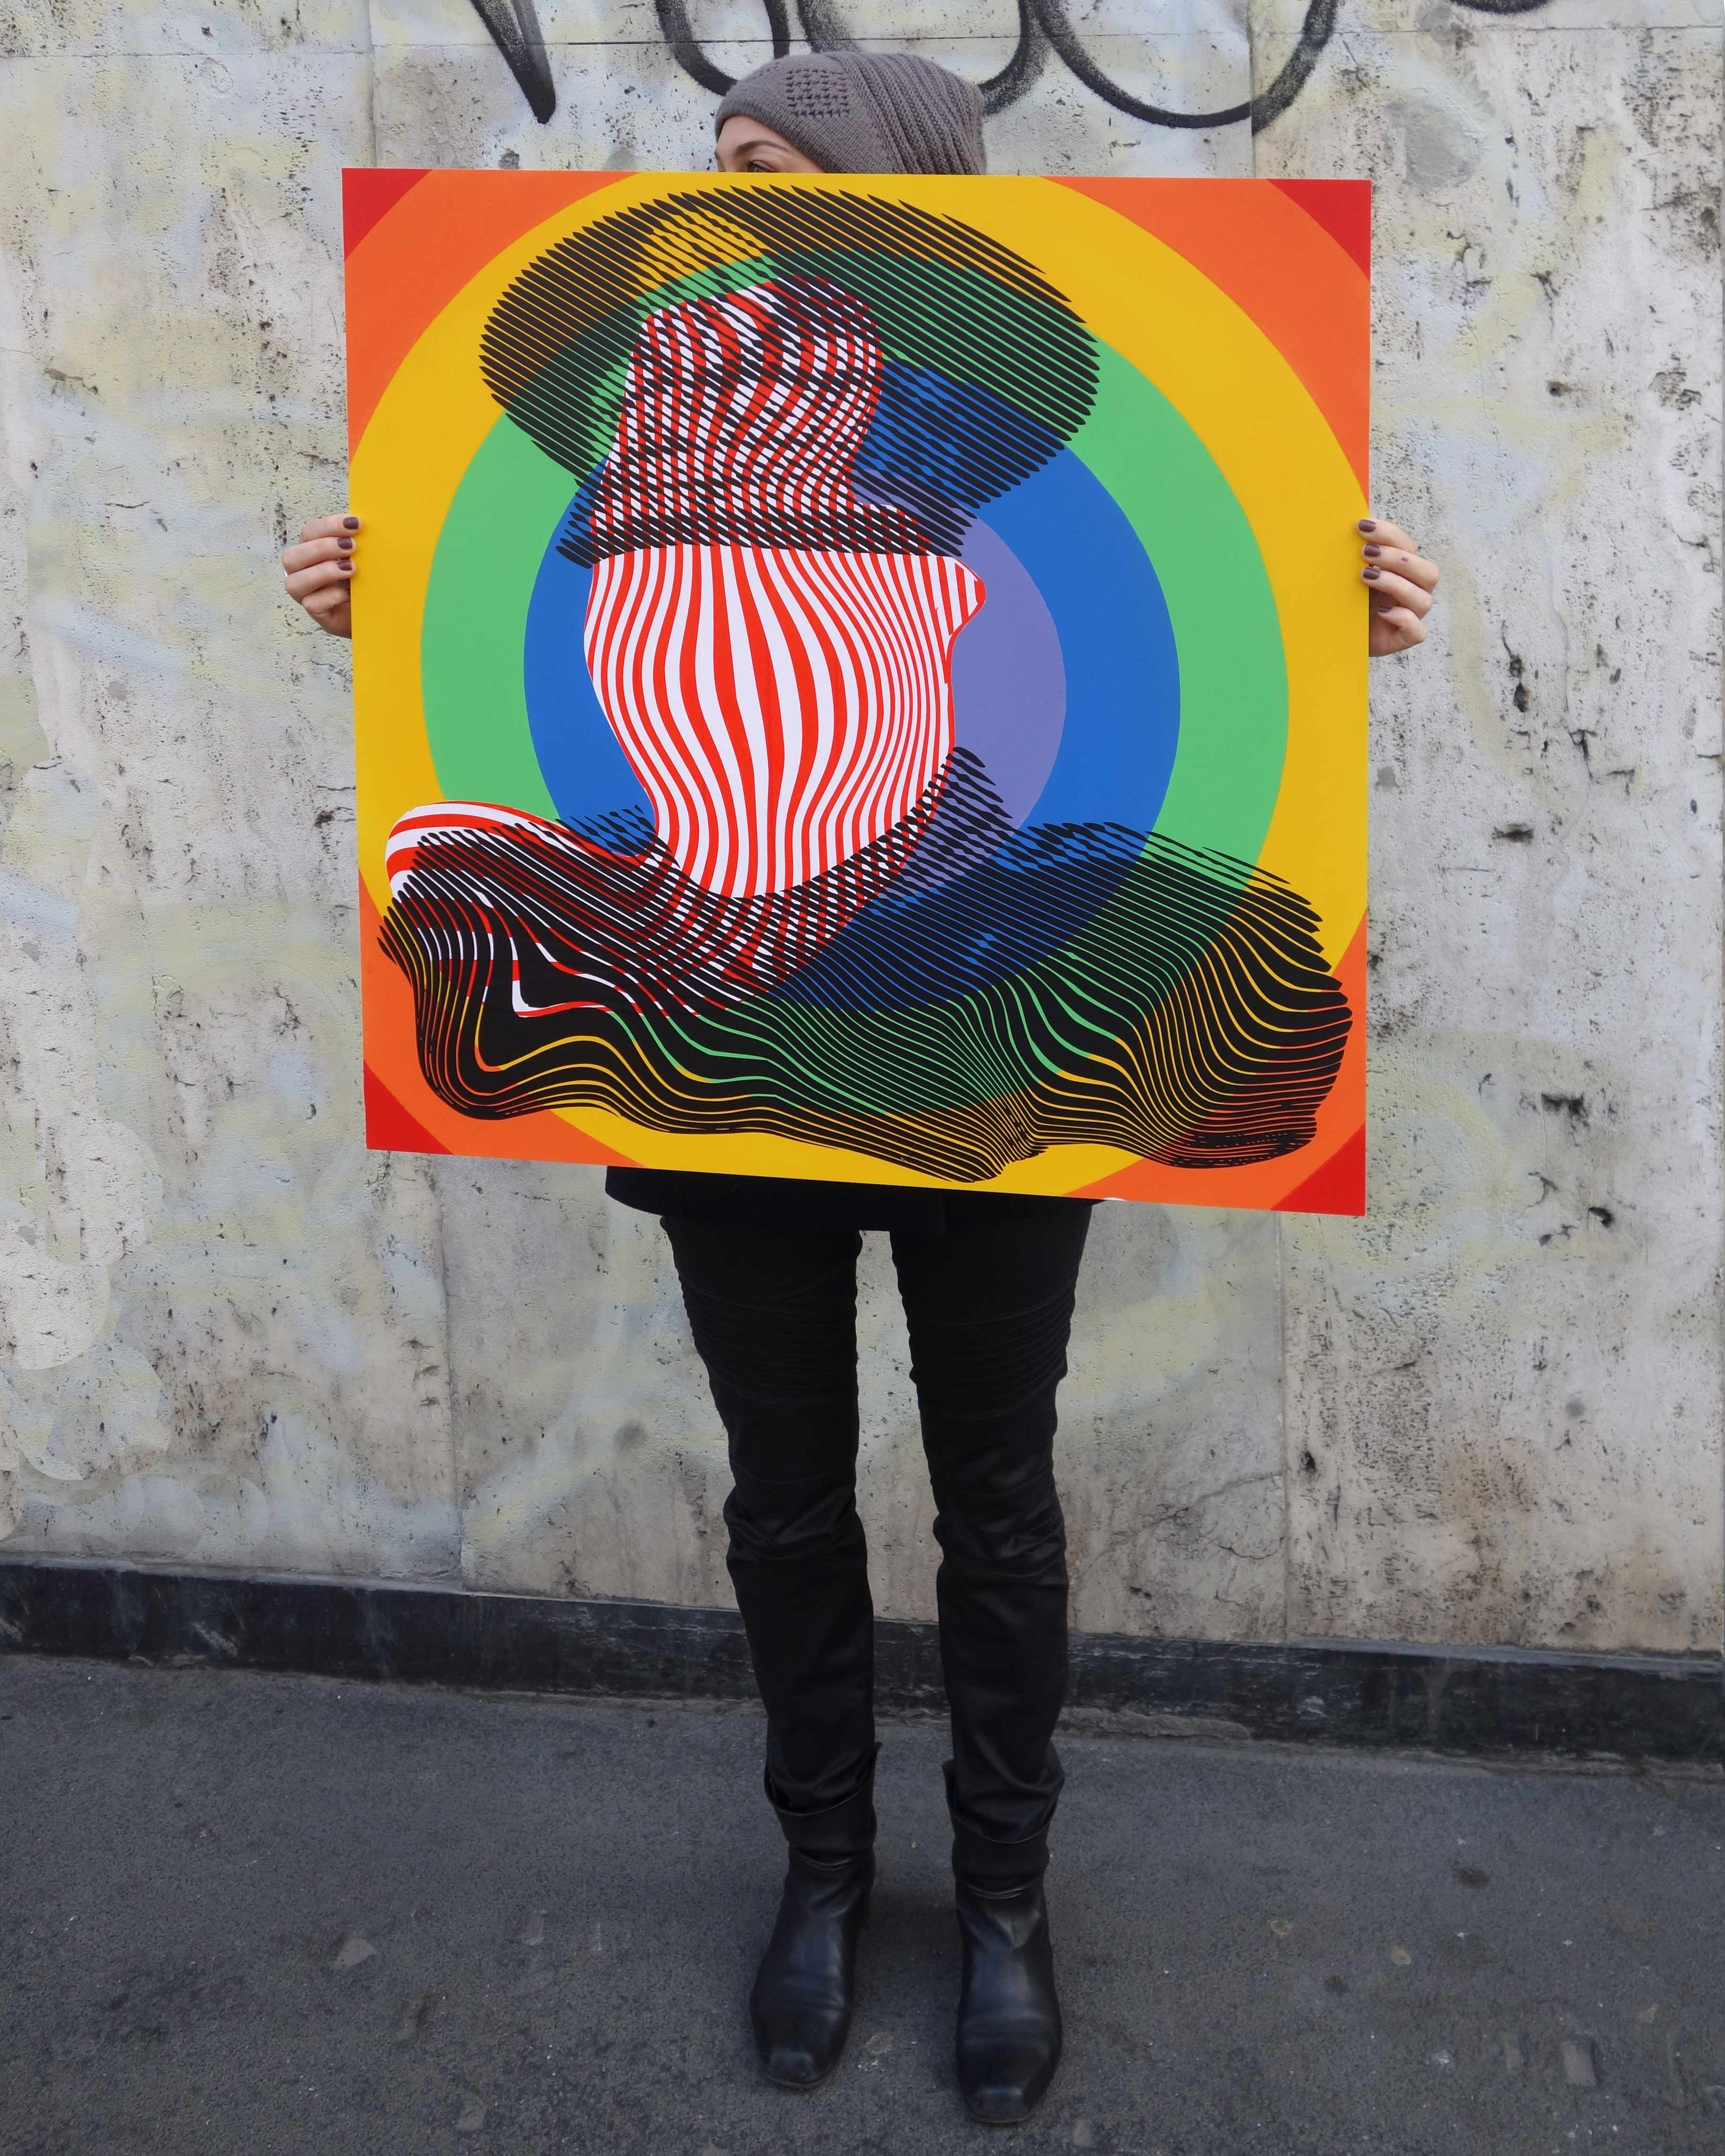 /media/1533/rainbow-general-2019-adhesive-foil-and-tape-on-forex-70x70x01-cm.jpg